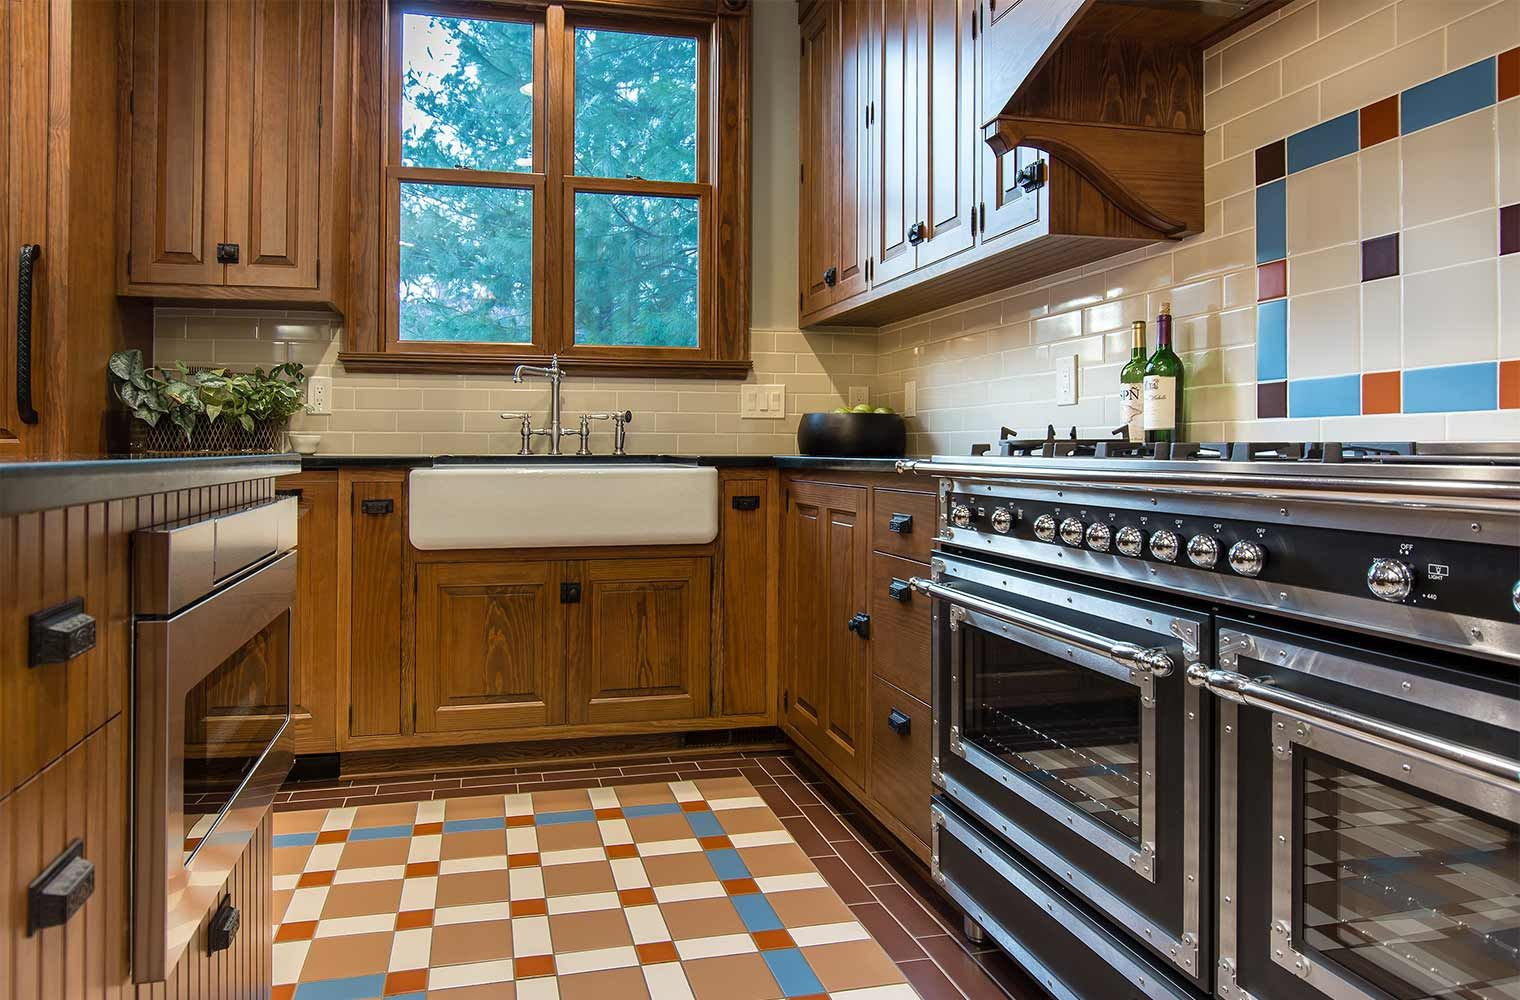 Things I Should Have Done Kitchen Remodel In Des Moines Victorian Home Renovation By Silent Victorian Kitchen Cabinets Cabinet Remodel Kitchen Diy Makeover